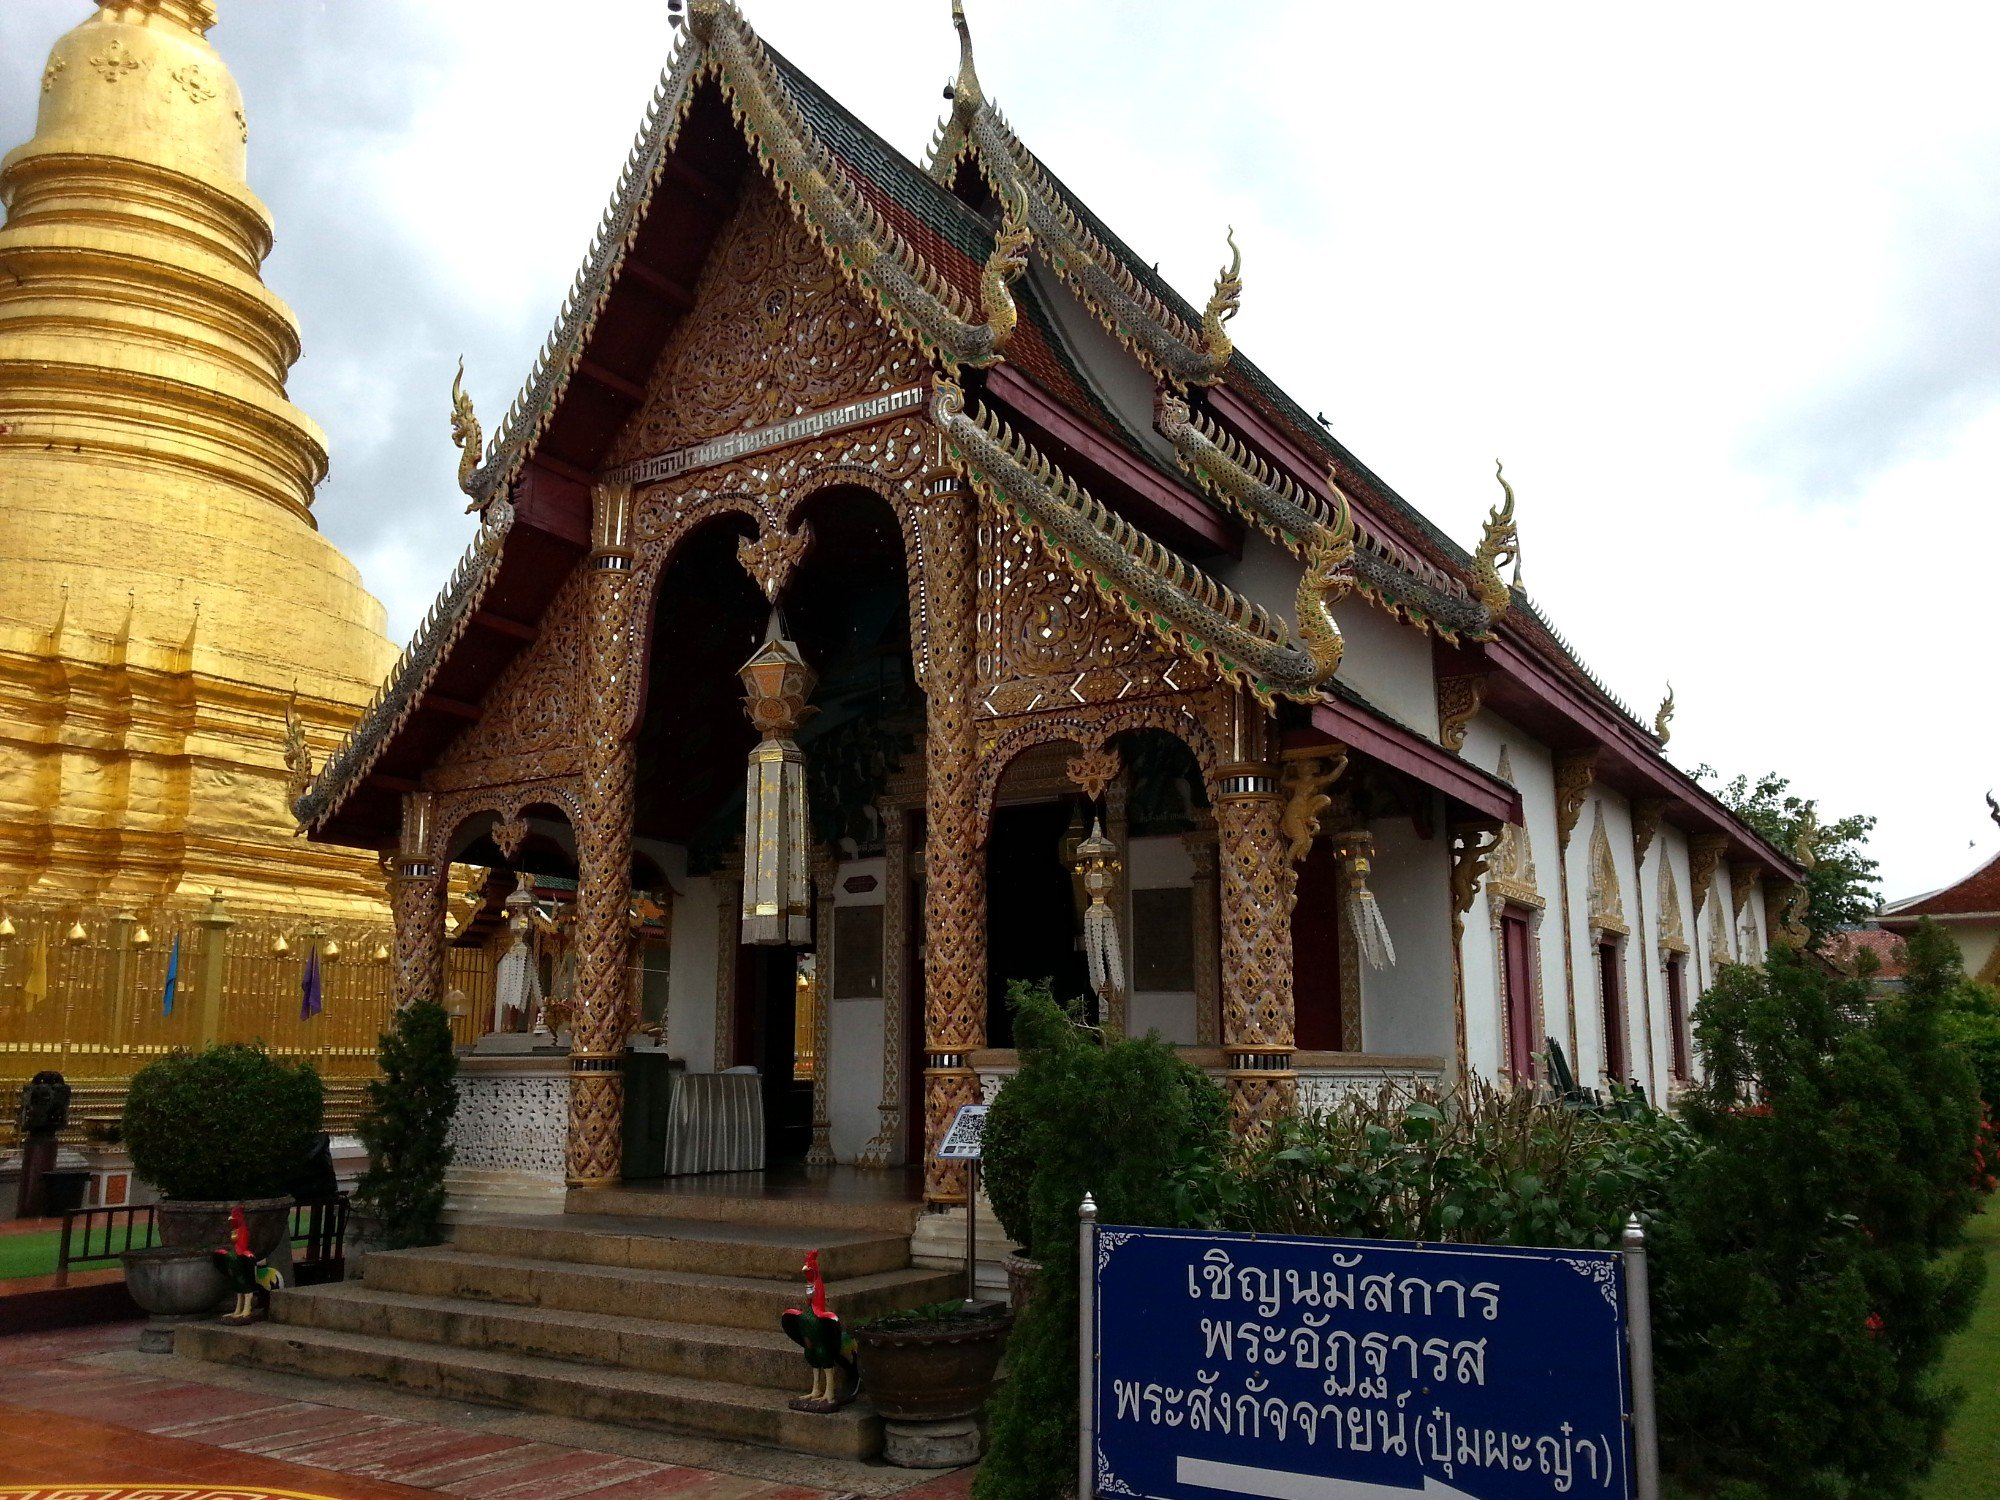 Smaller assembly hall at Wat Phra That Hariphunchai